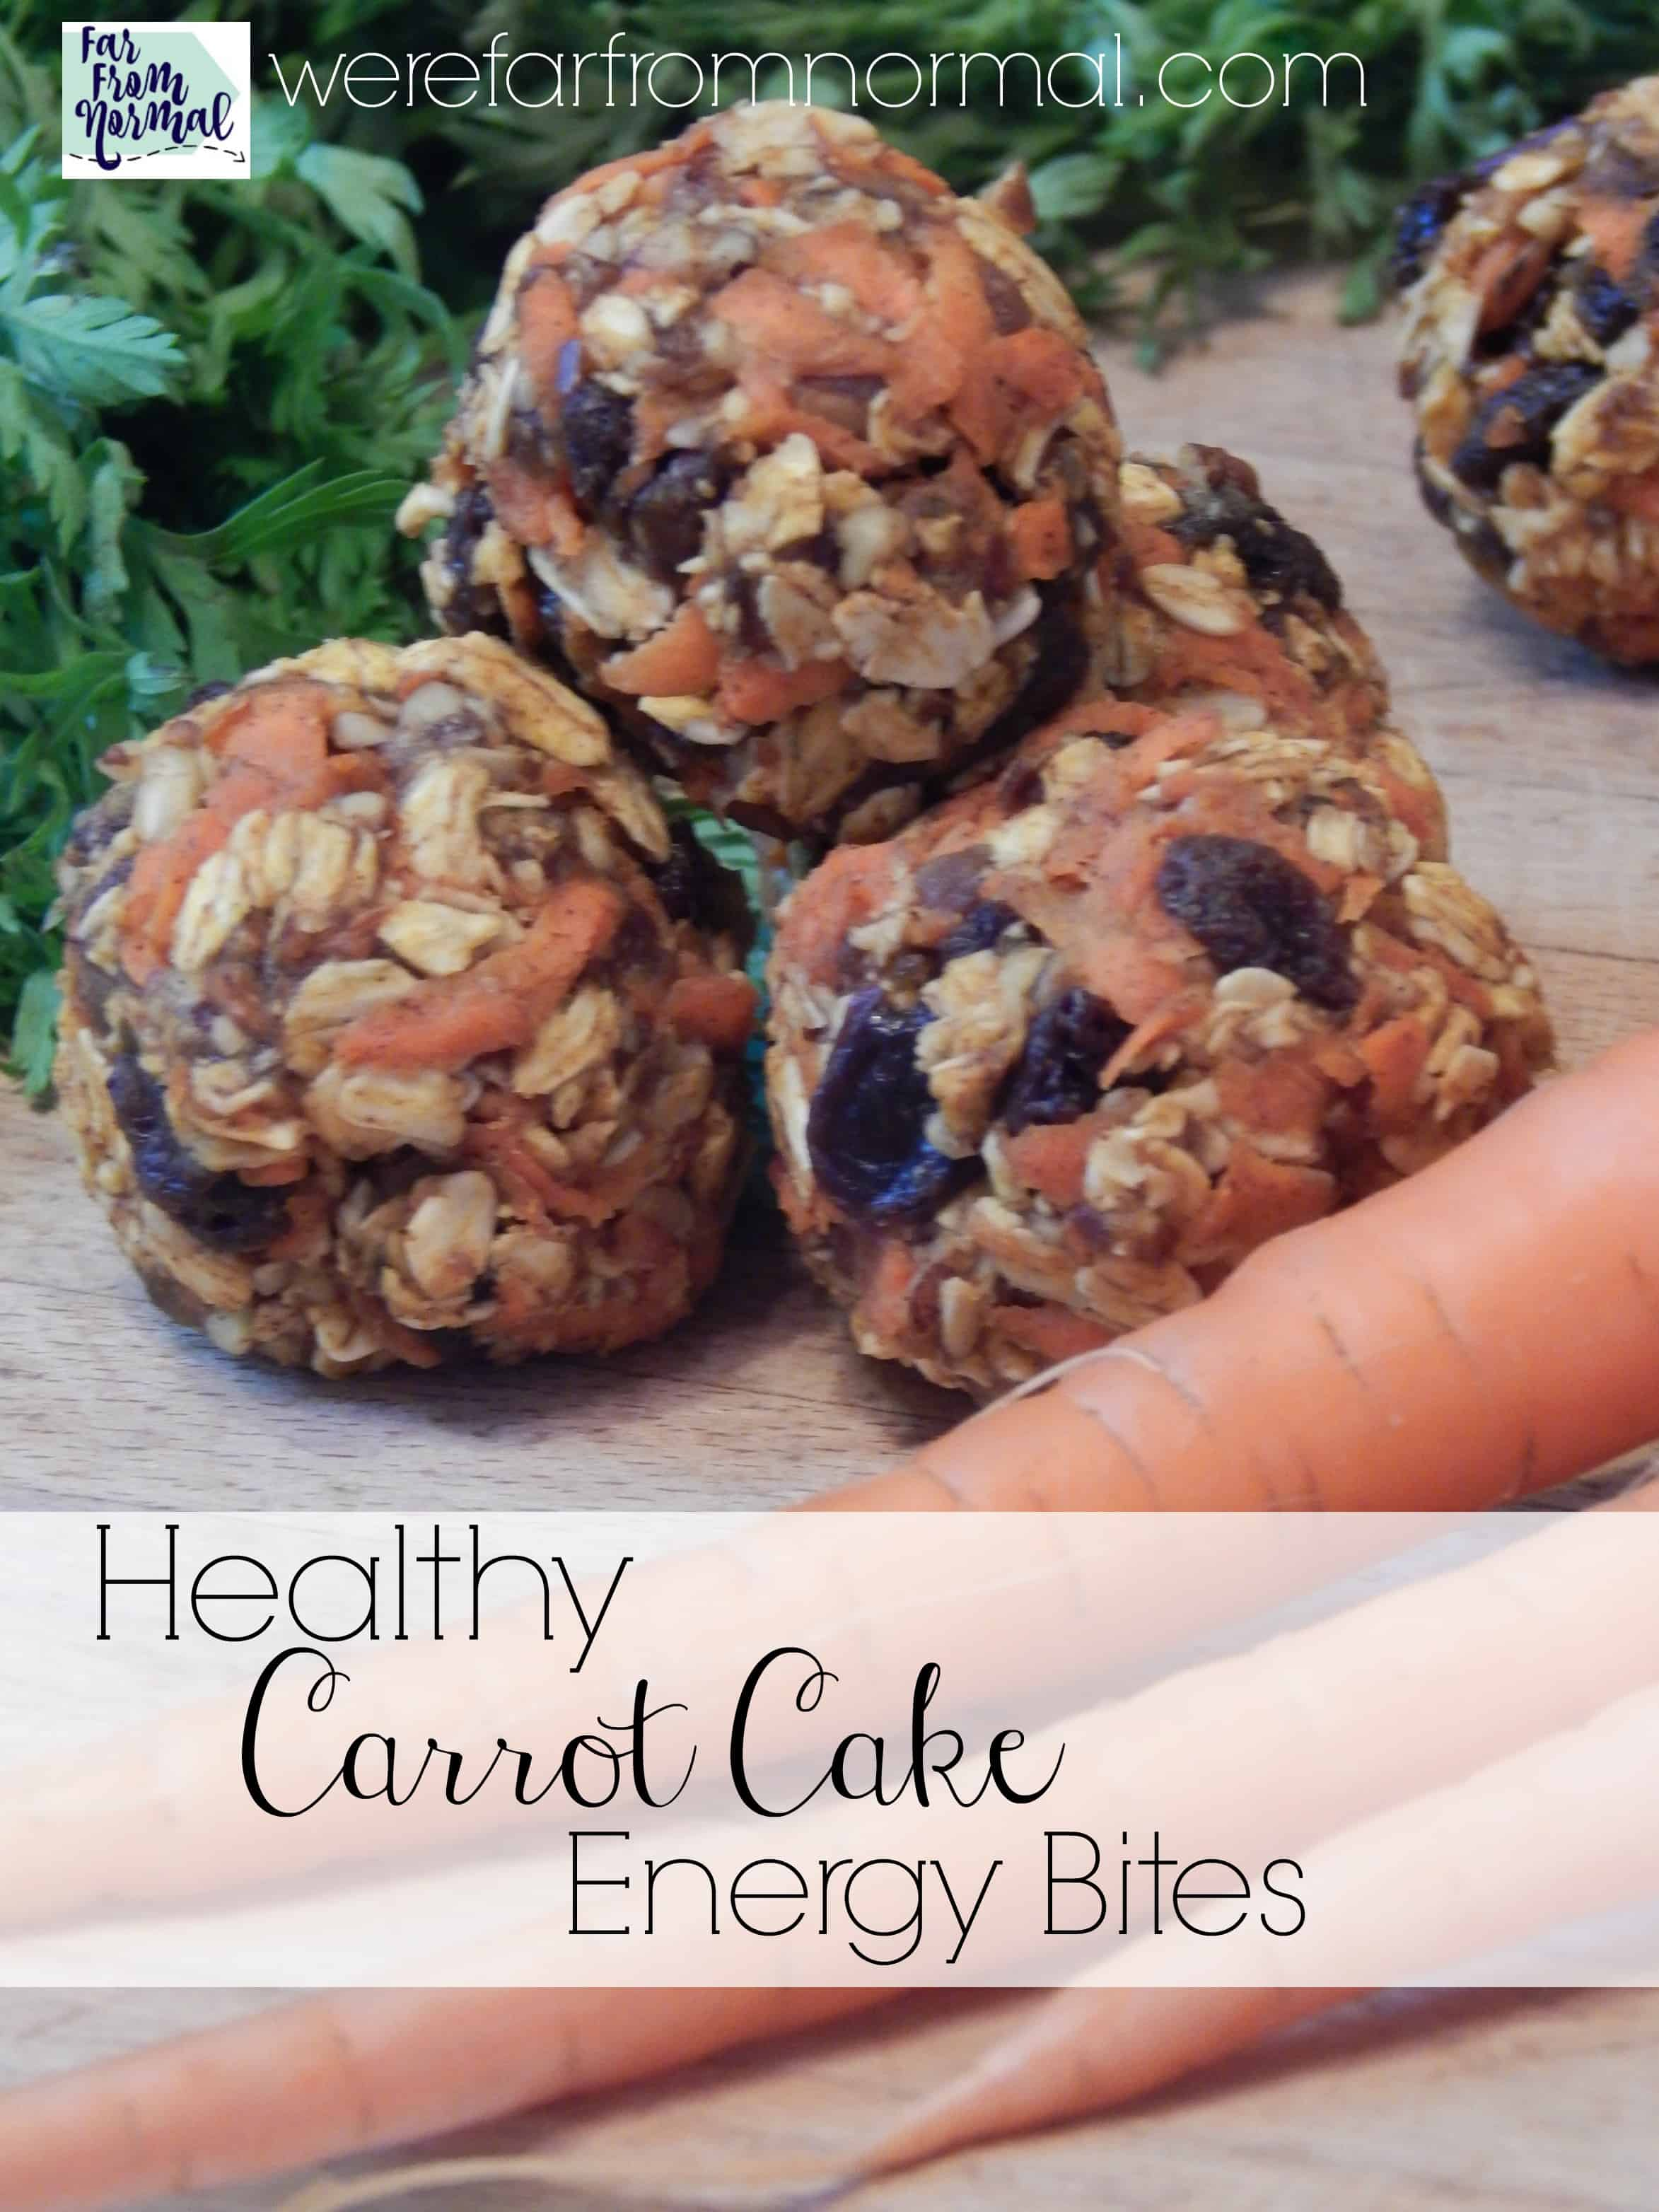 Healthy Carrot Cake Energy Bites